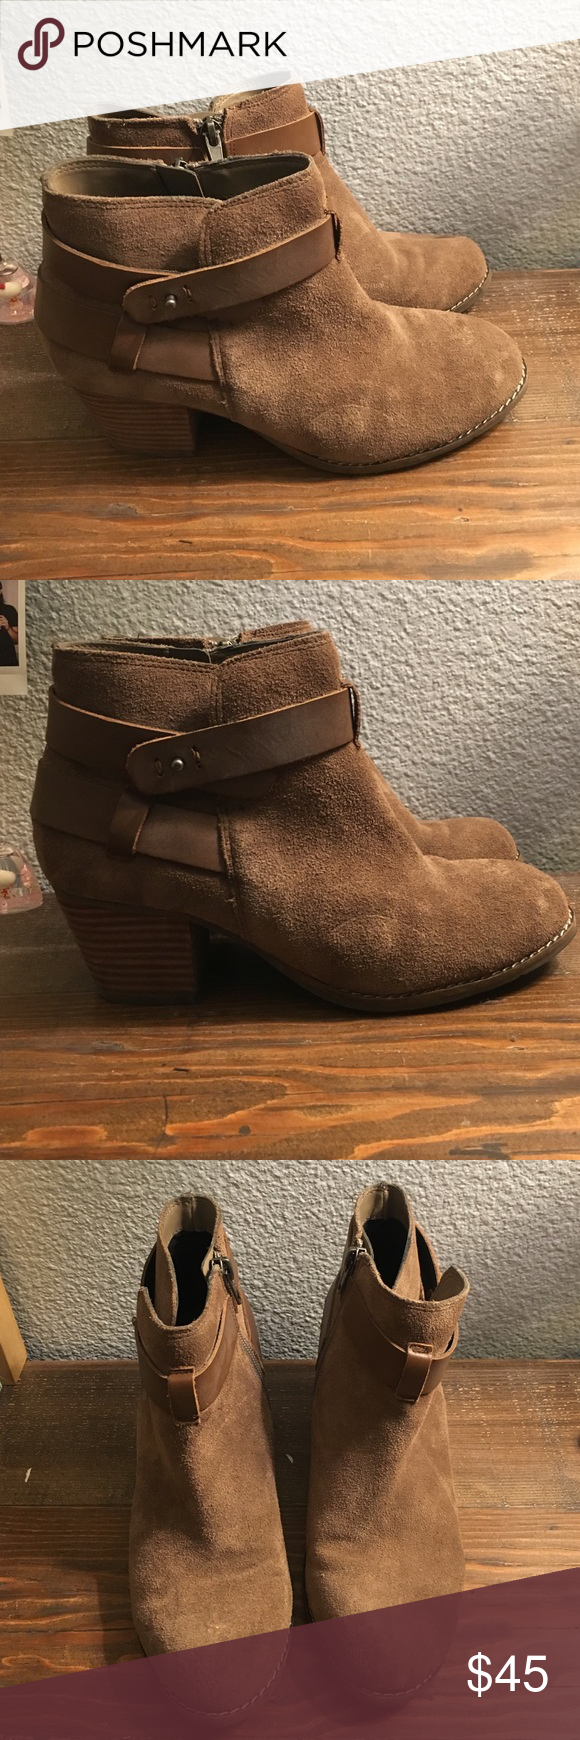 Dolce Vita heeled booties Tan booties with heel and leather strap Dolce Vita Shoes Ankle Boots & Booties